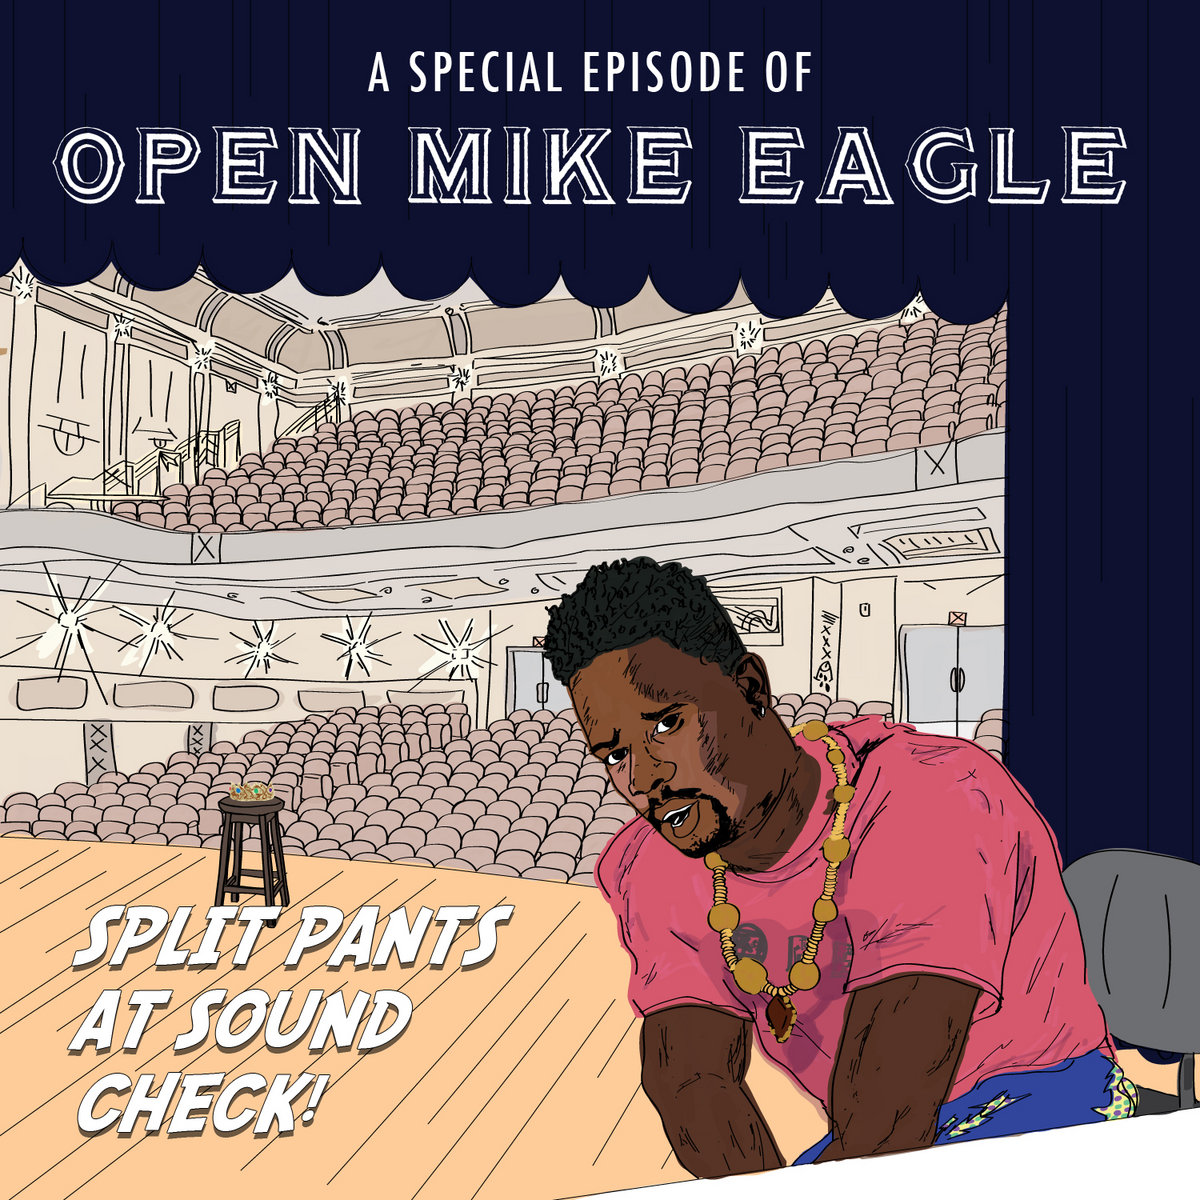 A Special Episode of Open Mike Eagle